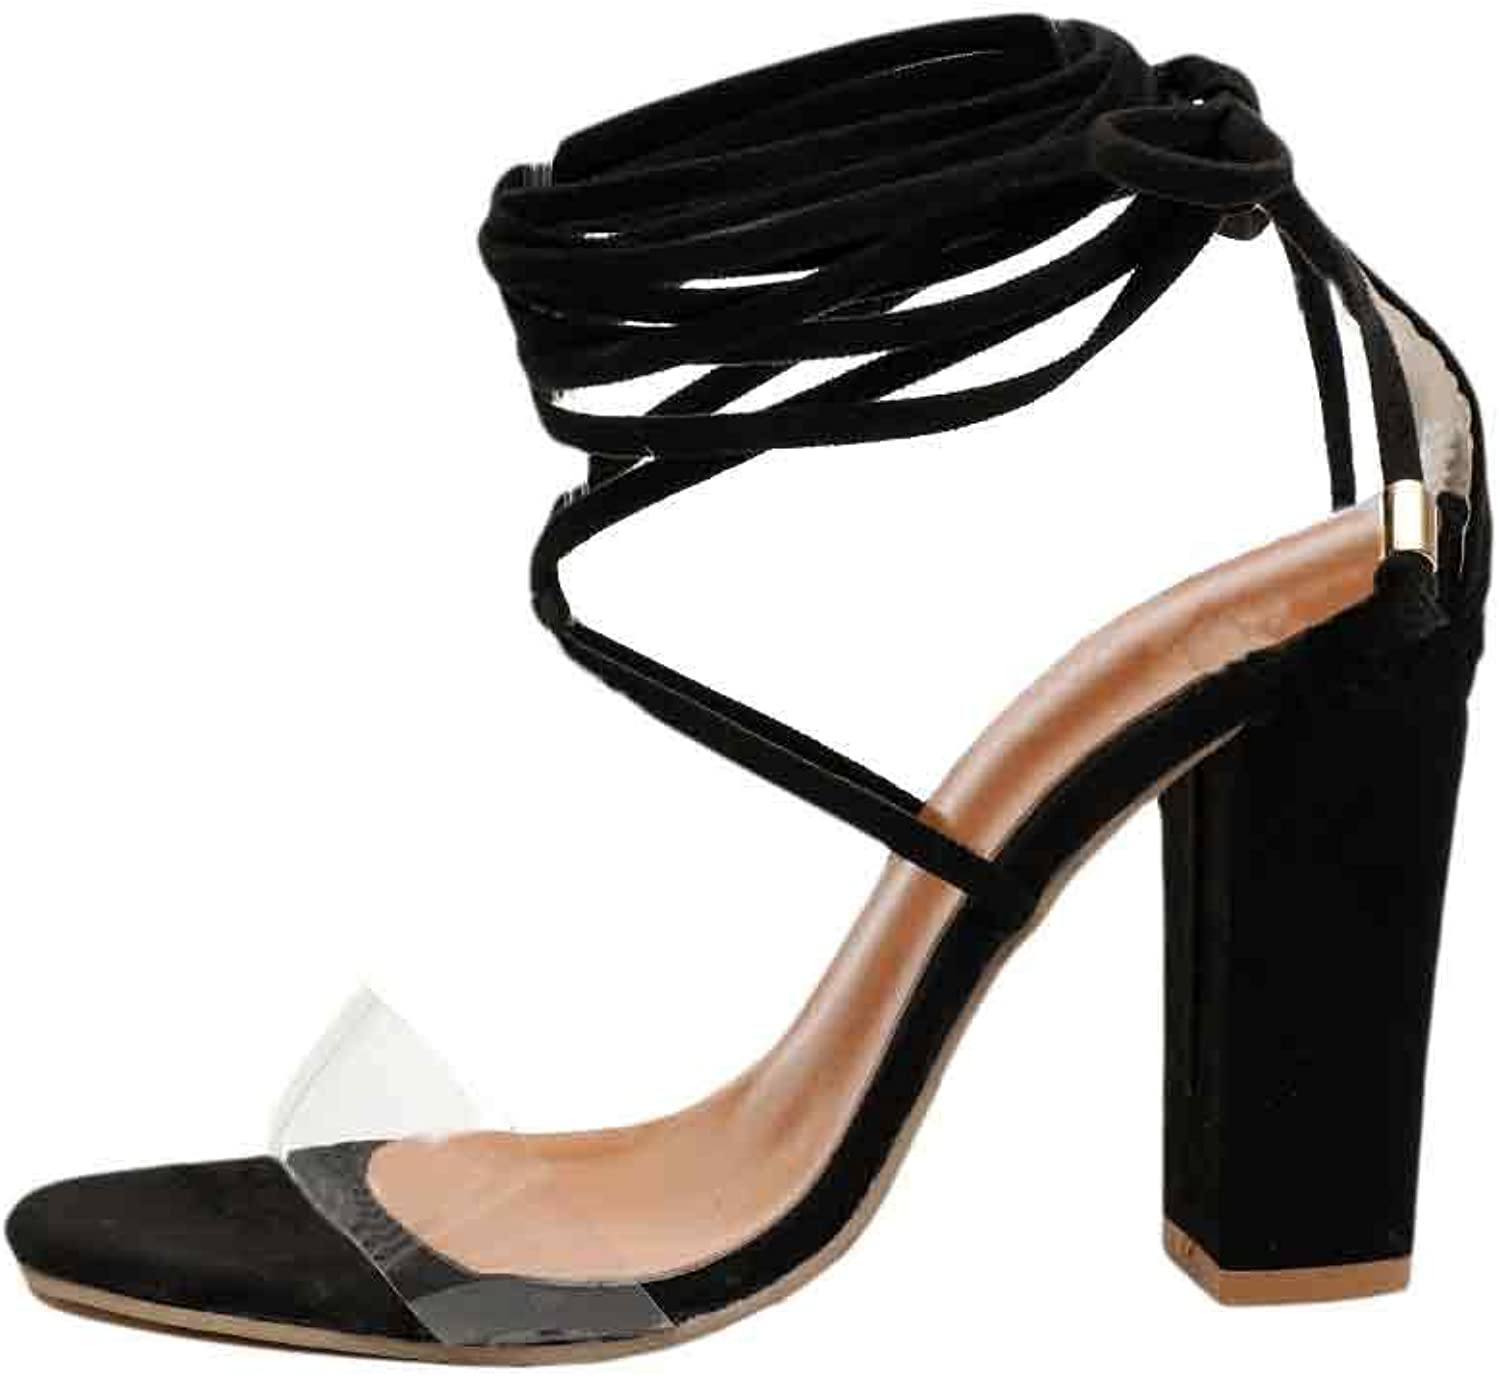 Huicai Ladies Solid color Strappy Clear Toe Hollow Thicken High Heeled shoes